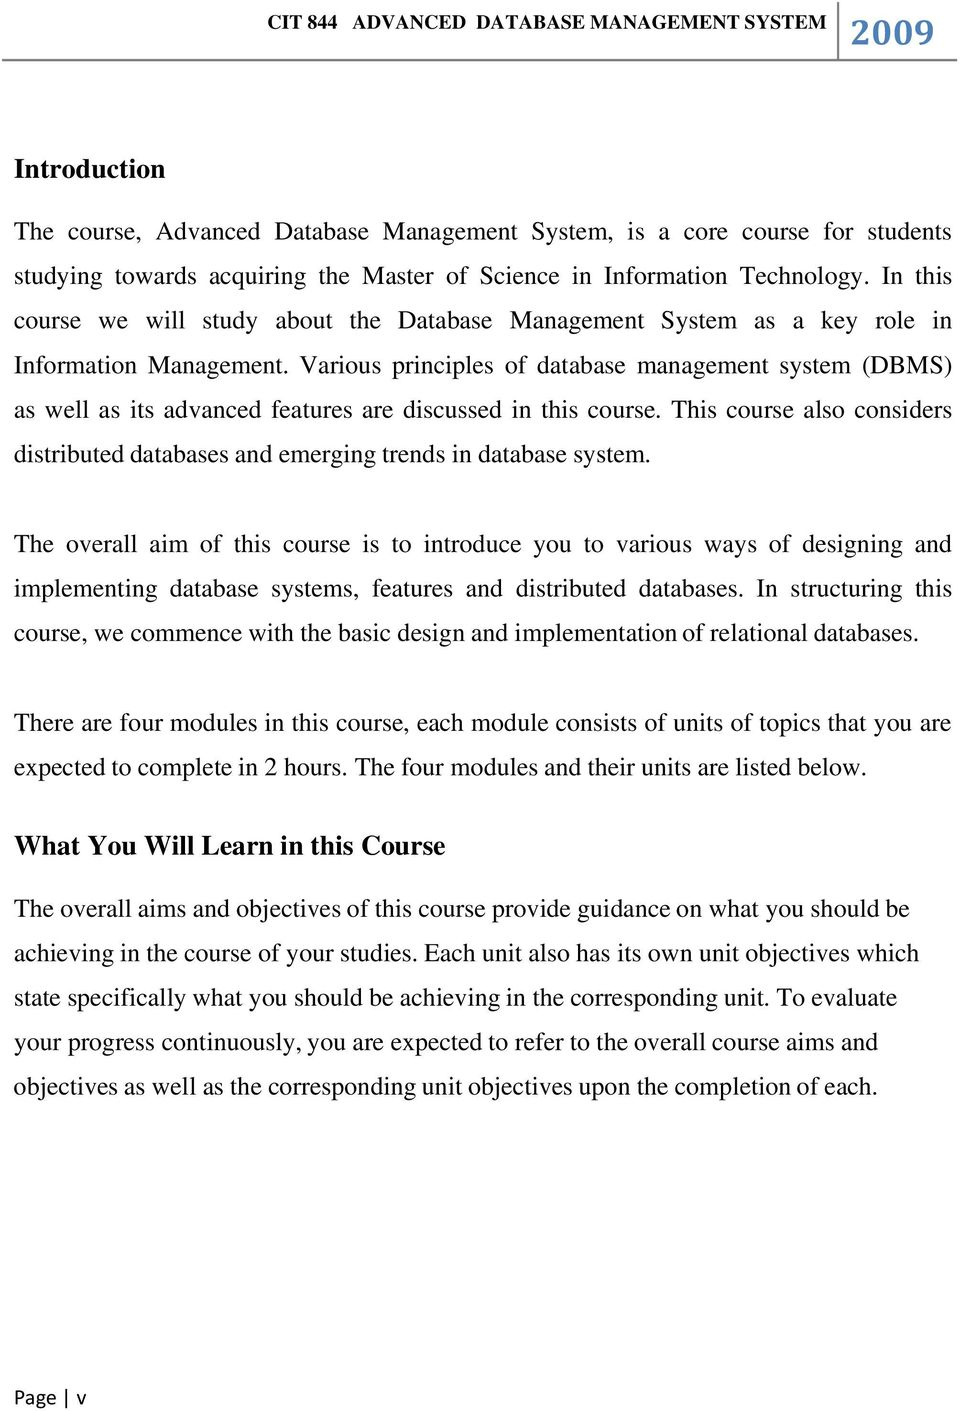 High School Scholarship Essay Examples Louis Xiv Essay Azetidine Synthesis Essay Compare And Contrast Essay Topics For High School Students also What Is A Thesis Statement For An Essay Doctor Assisted Death Essay Example Thesis Statement Essay